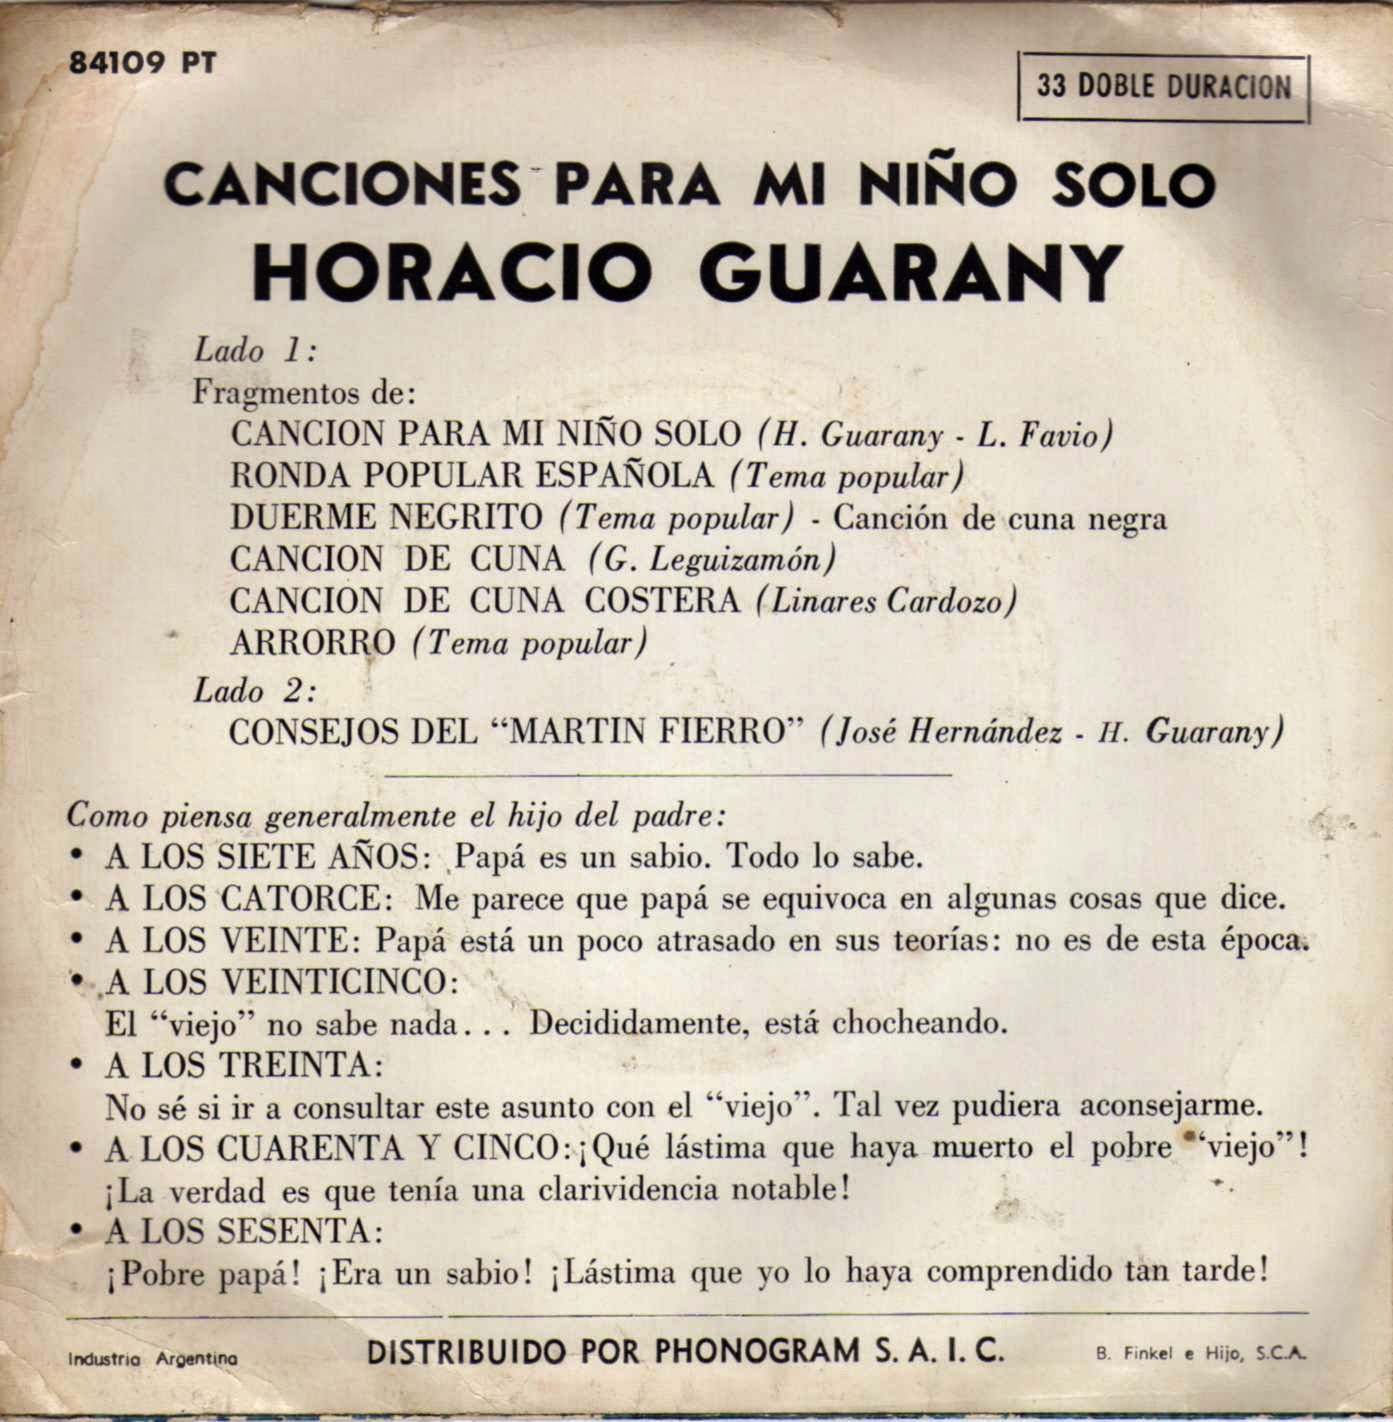 horacio guarany descargar cancion para niño tapa